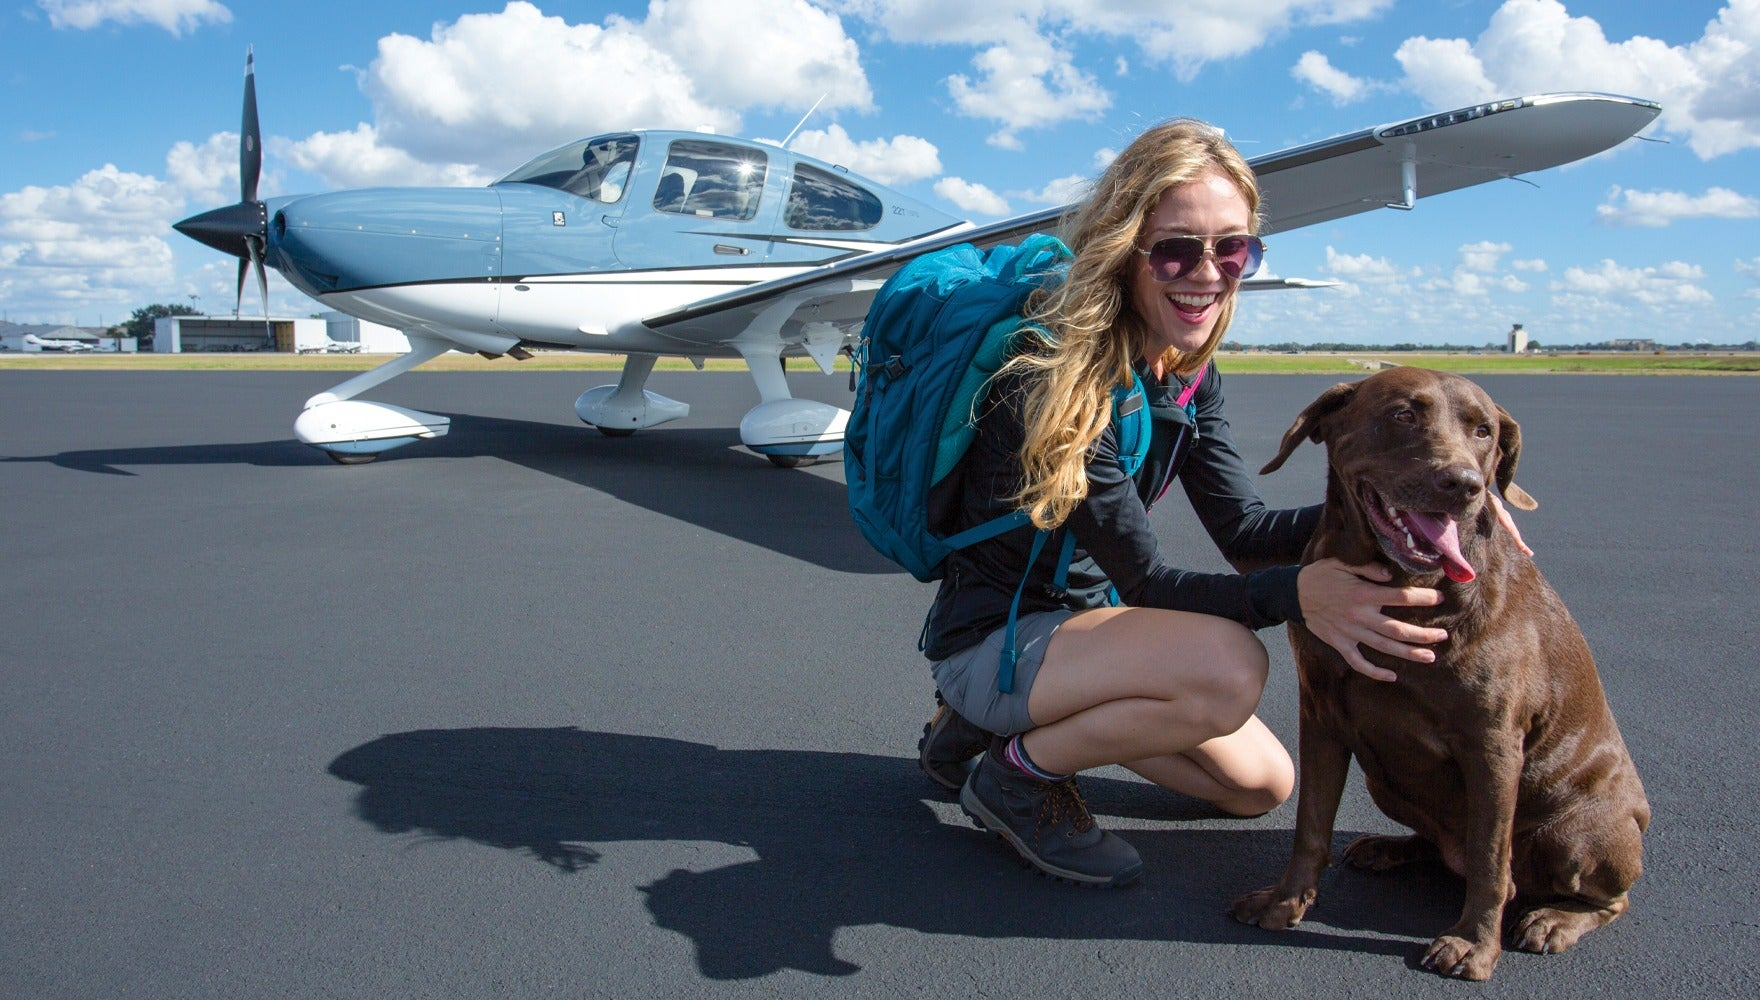 Our Top Tips for Flying with Your Dog